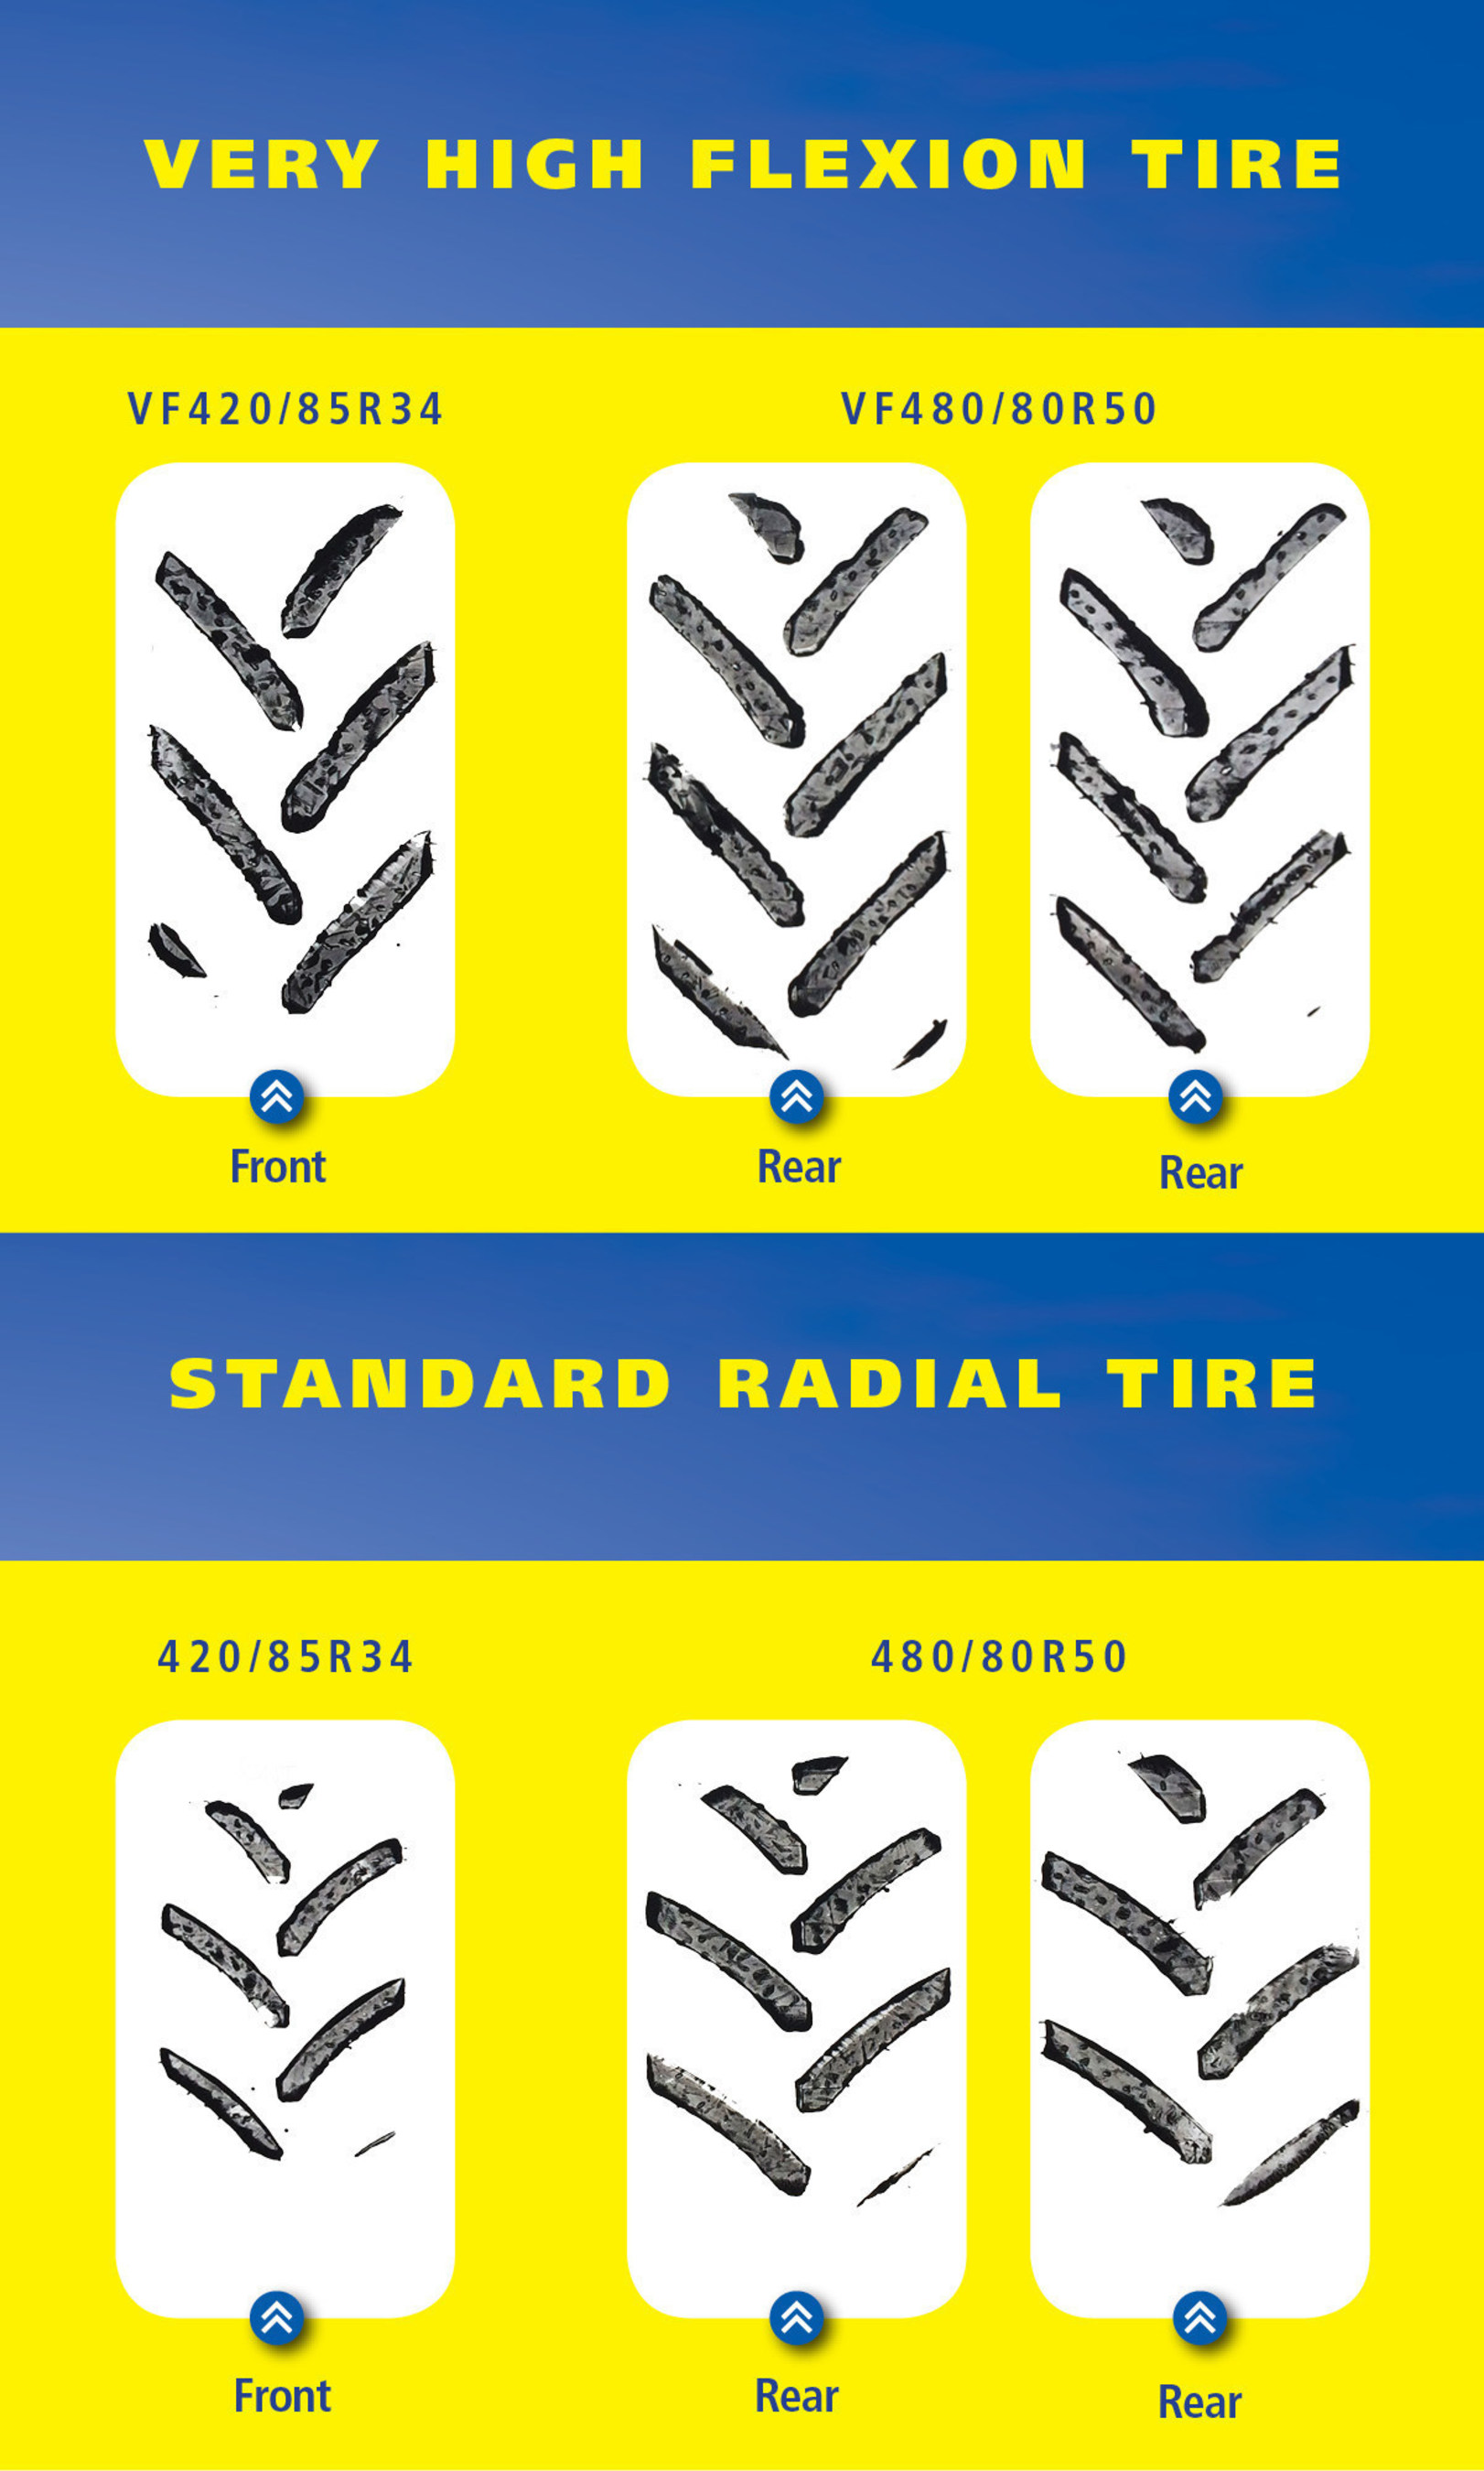 The larger footprint of Michelin Ultraflex Very High Flexion (VF) tires reduces soil compaction by spreading the weight of the machine over the largest area possible.